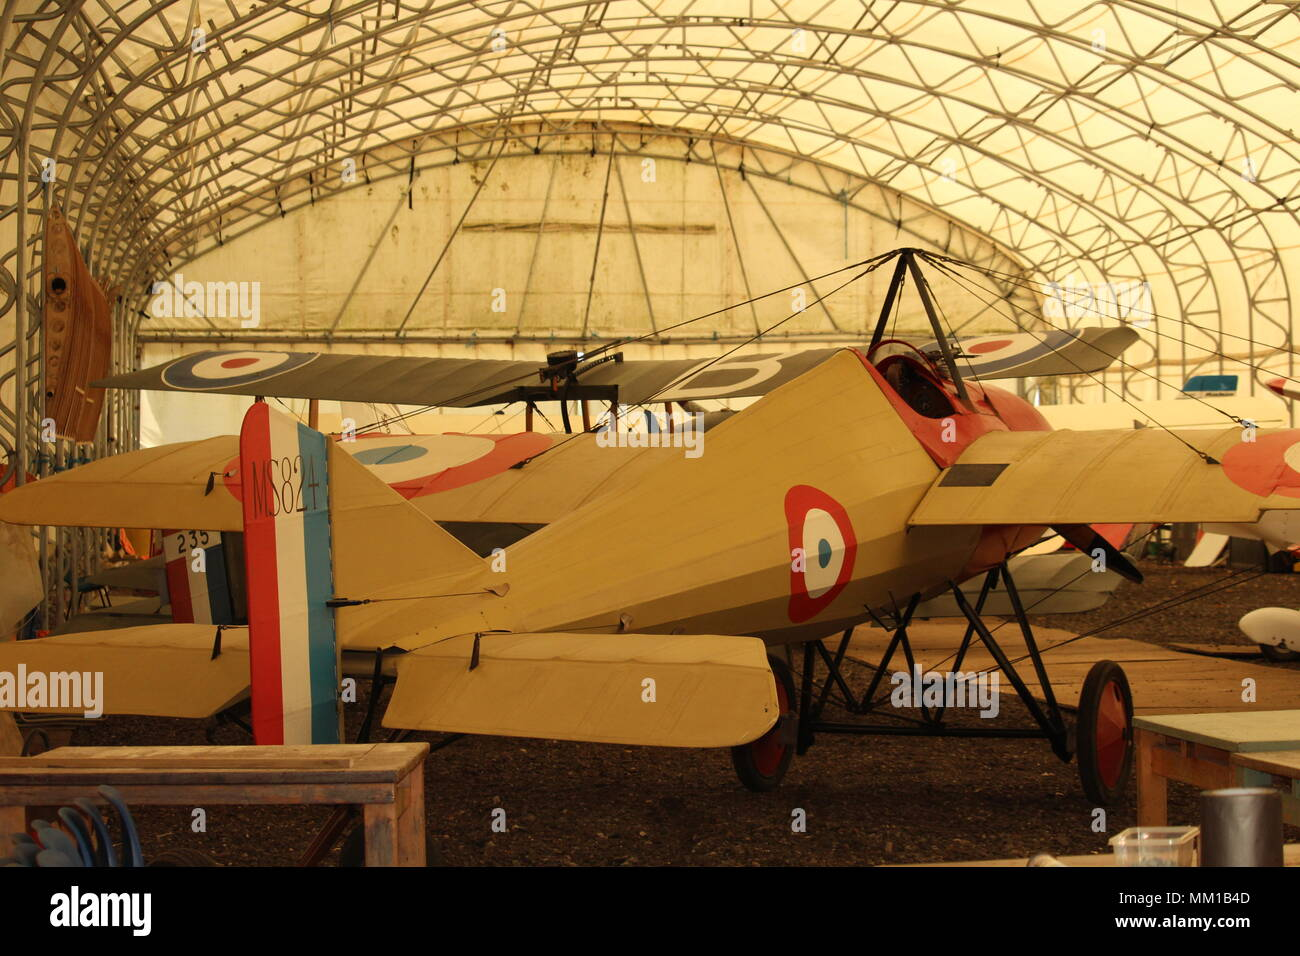 British Military Heritage - Interior of private aircraft hangar at the WW1 Great War Aerodrome, Stow Maries, Purleigh, Essex. - Stock Image